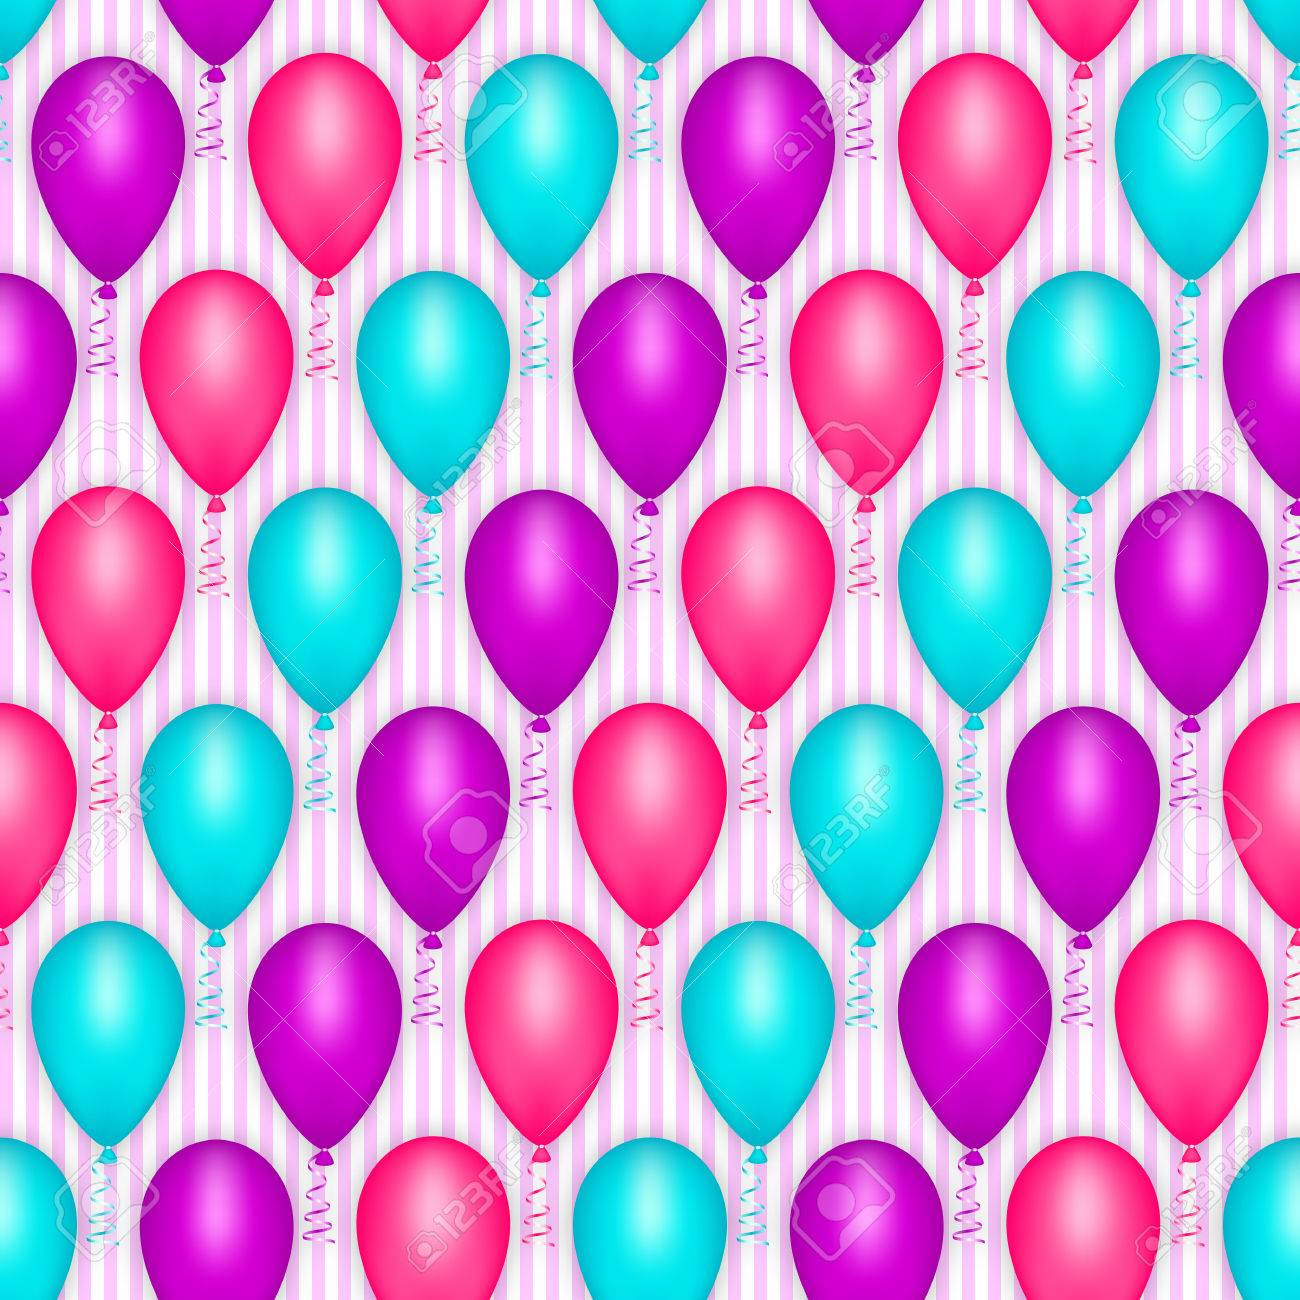 Balloon Seamless Pattern Happy Birthday Party Holiday Decoration